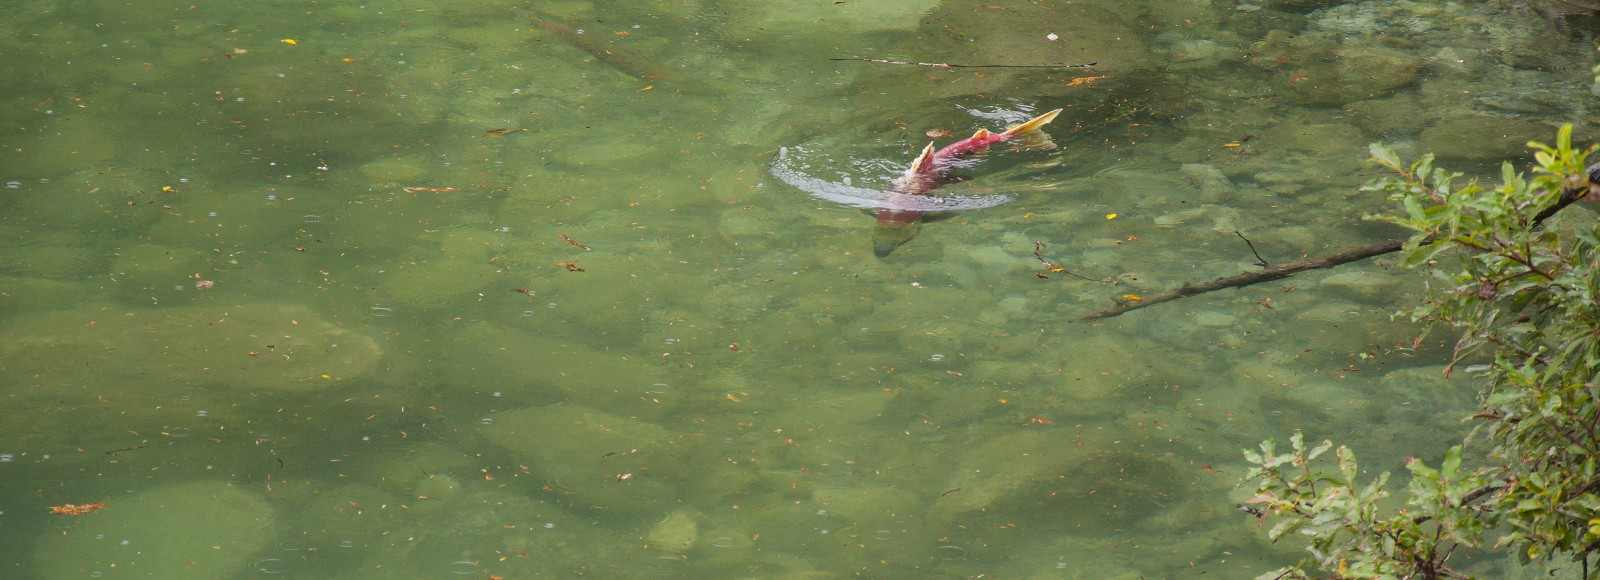 Single salmon swimming along the shore of a still green lake